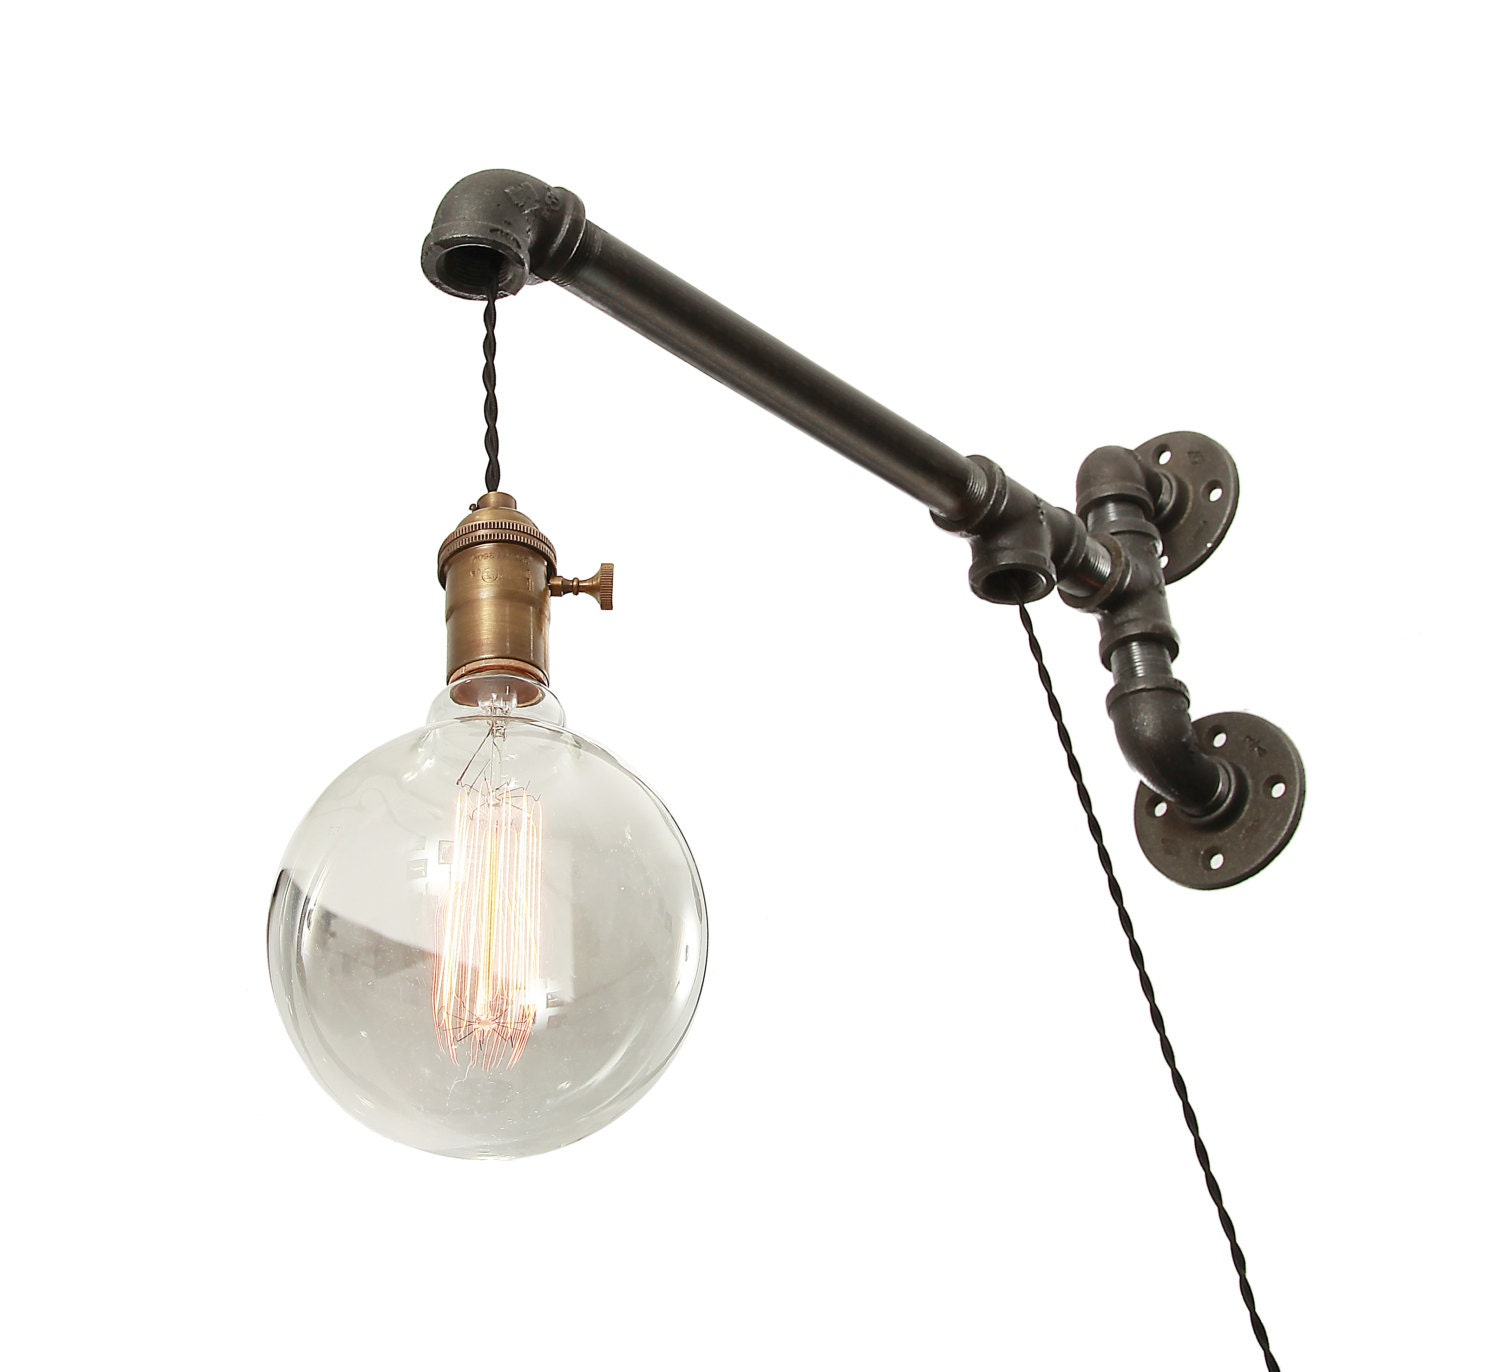 Industrial Pipe Wall Light Wall Light Pipe Light Wall